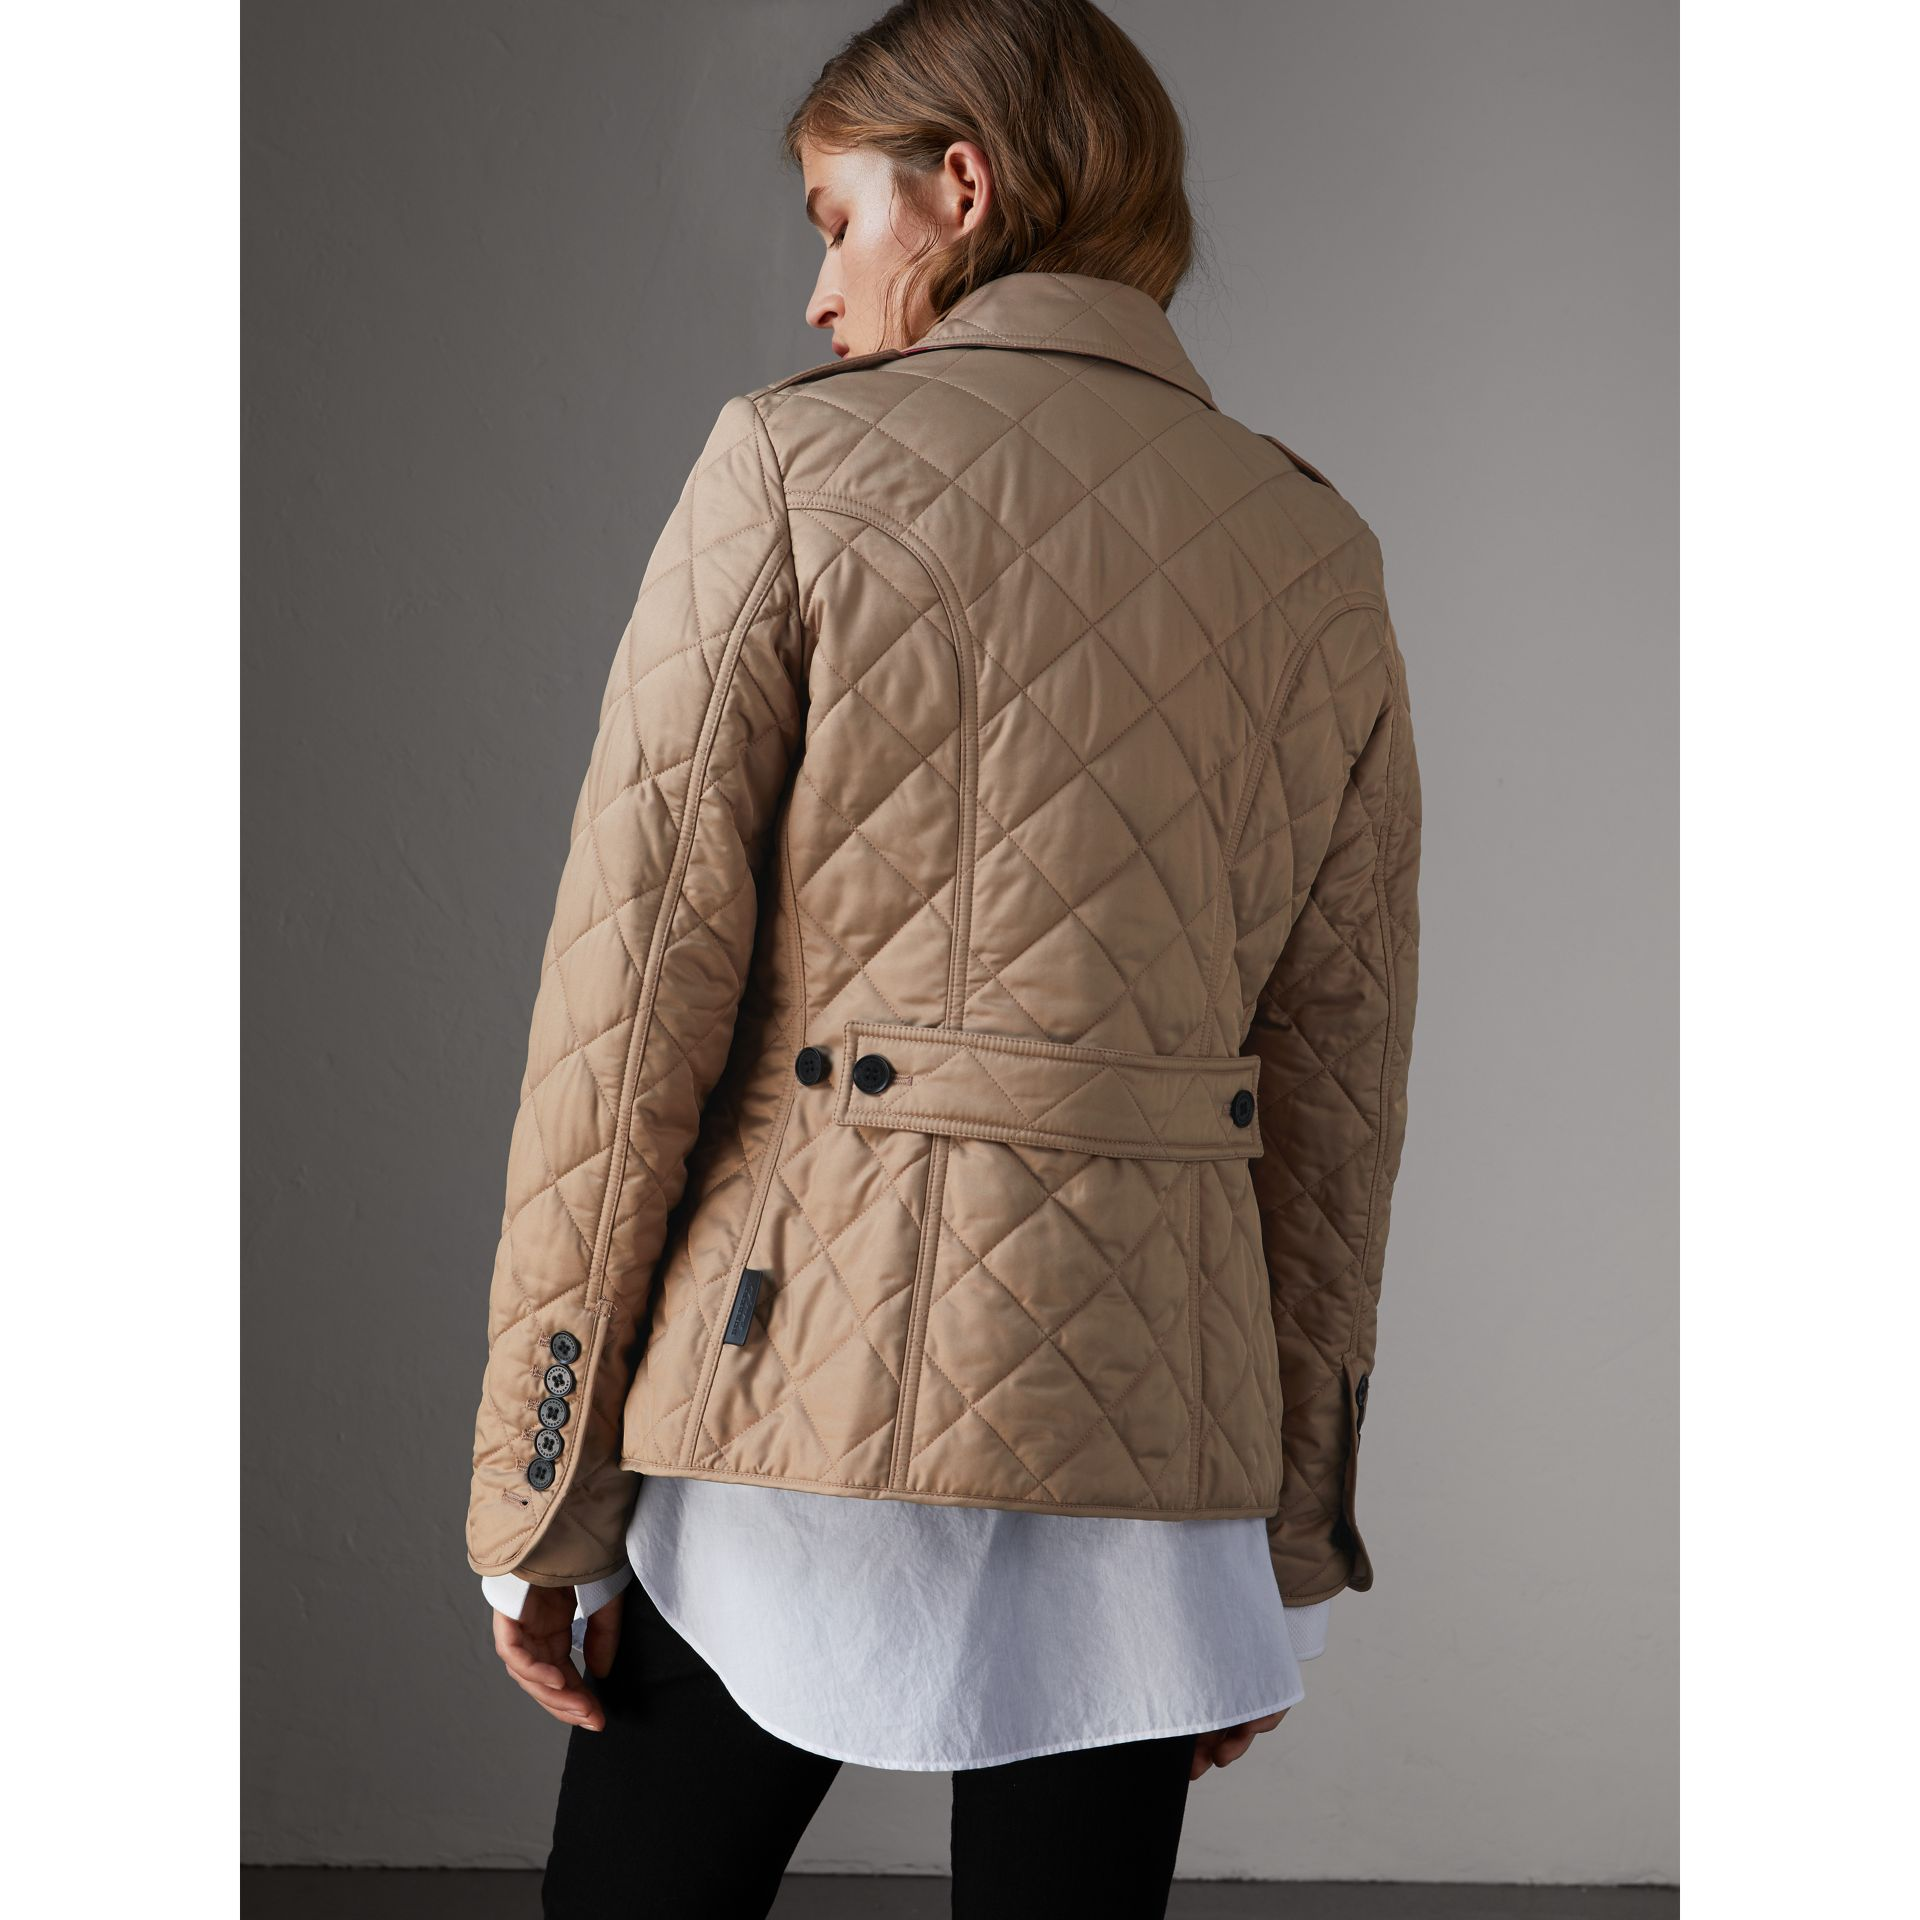 Jacke in Rautensteppung (Canvas) - Damen | Burberry - Galerie-Bild 2